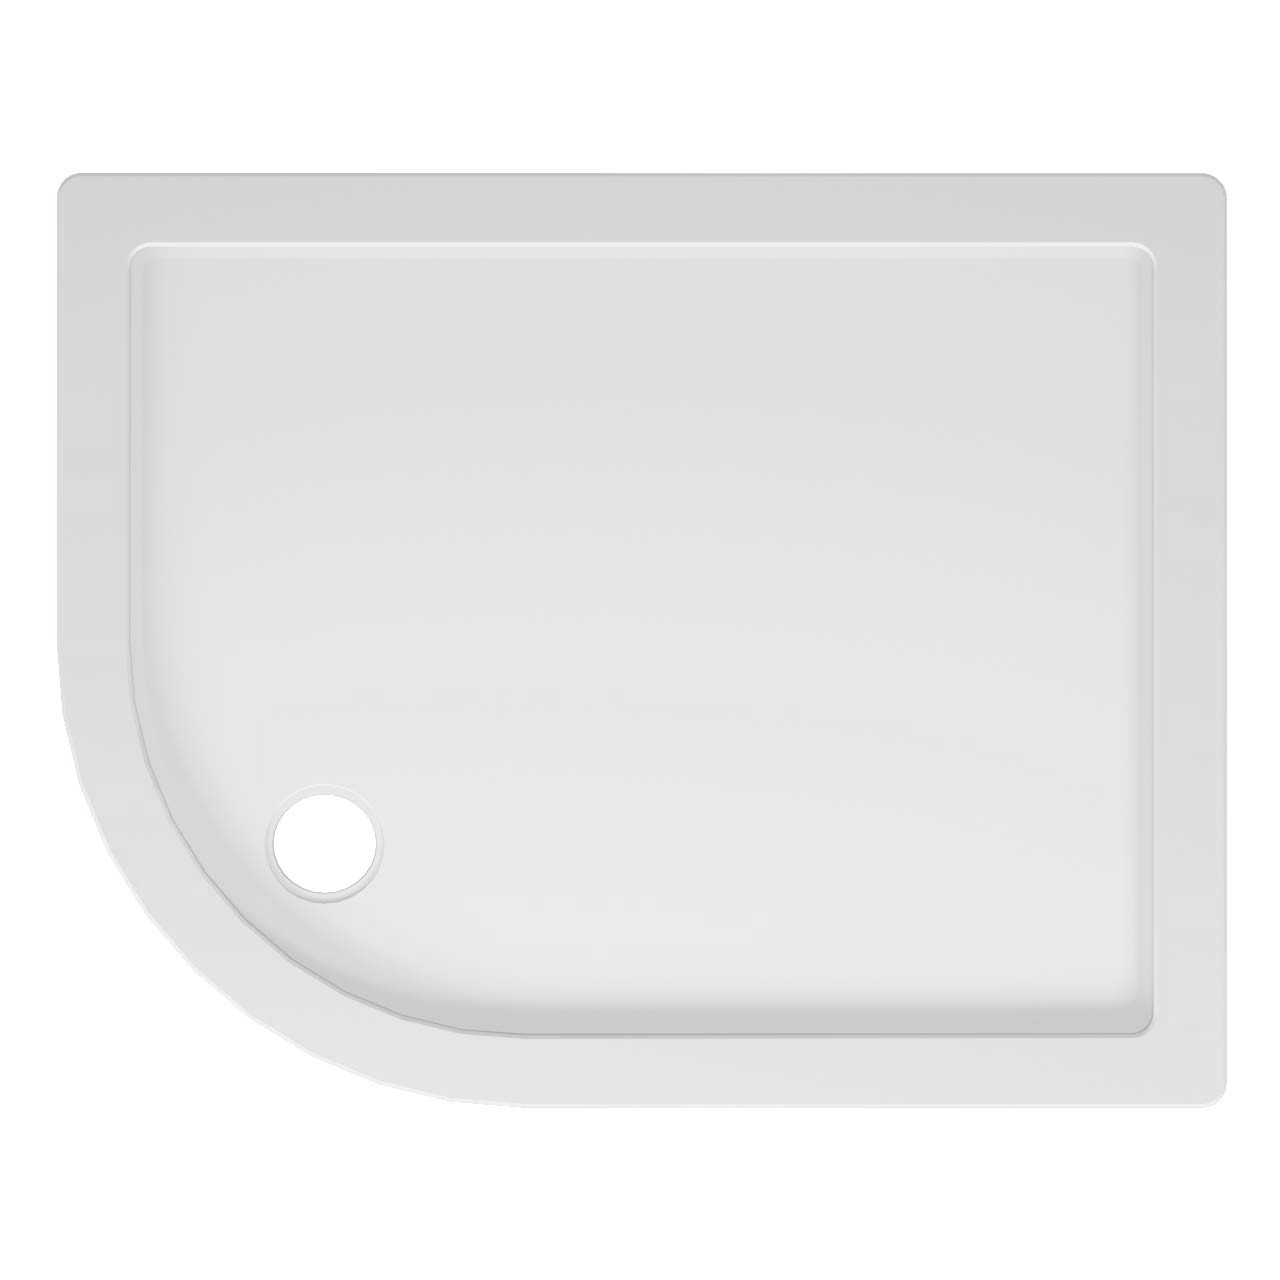 40mm Pearlstone 1000 x 800 Left Hand Offset Quadrant Shower Tray & Plinth